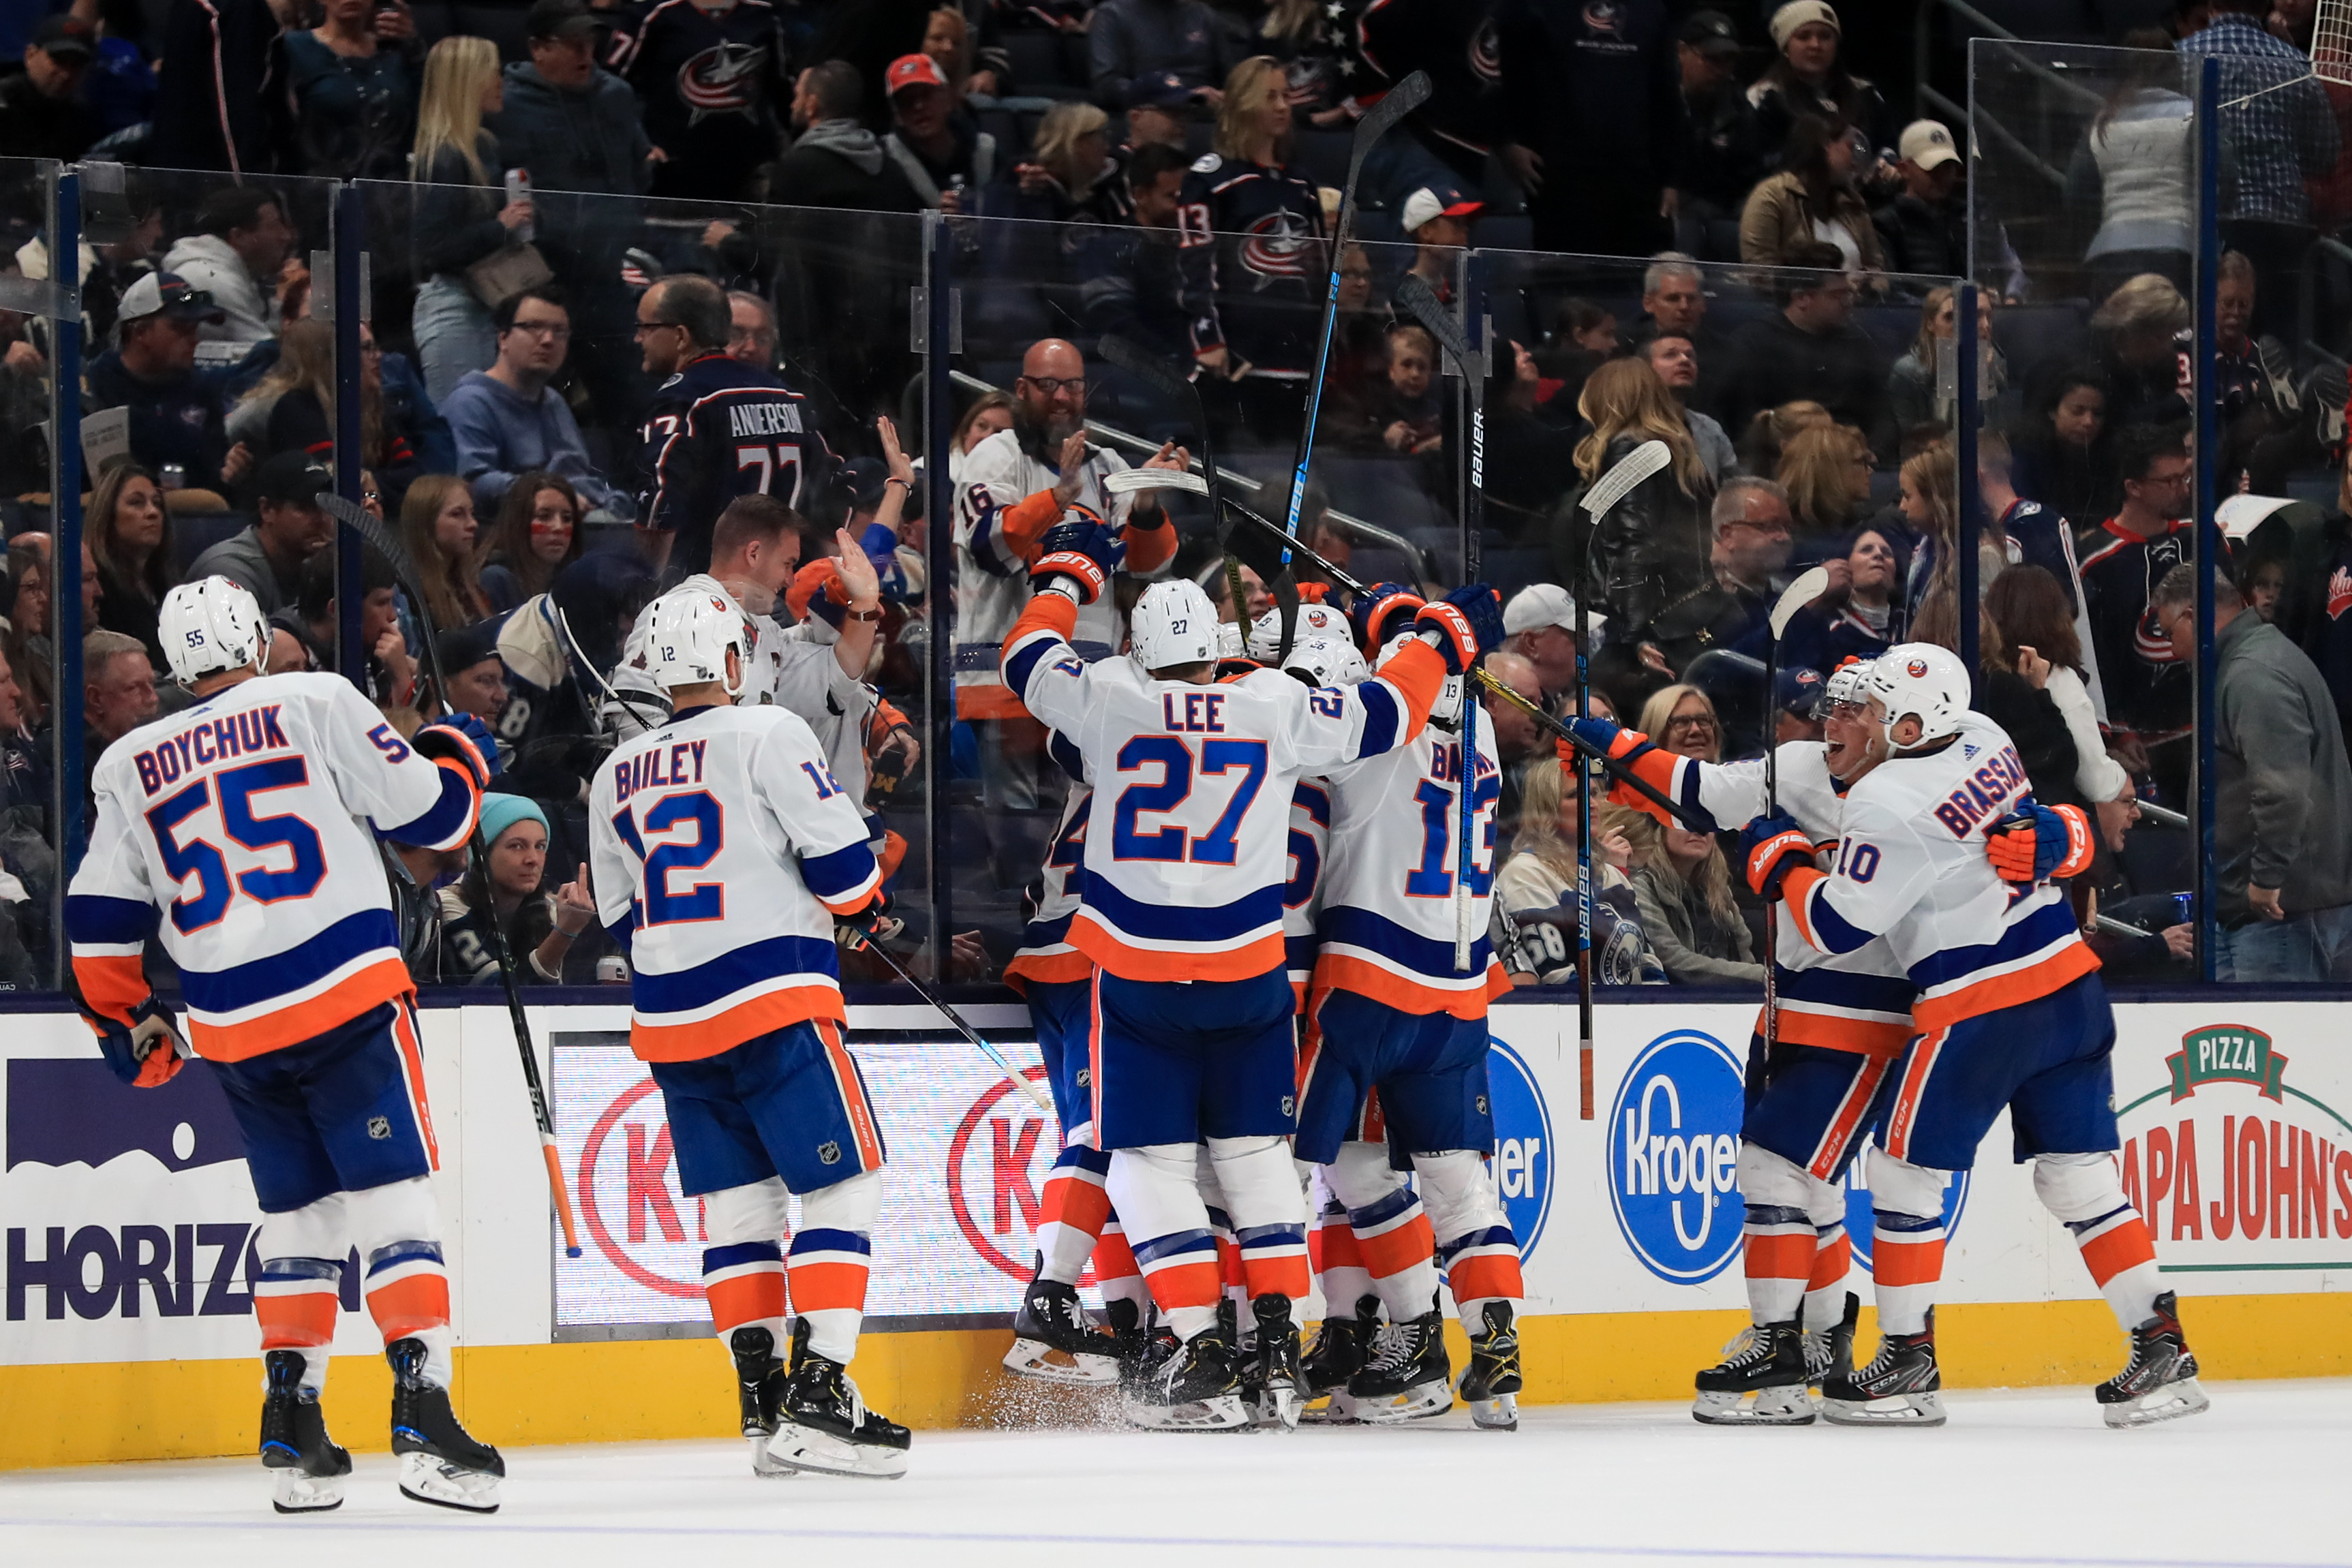 Oct 19, 2019; Columbus, OH, USA; New York Islanders center Brock Nelson (29) celebrates scoring the game winning goal against the Columbus Blue Jackets in the overtime period at Nationwide Arena. Mandatory Credit: Aaron Doster-USA TODAY Sports